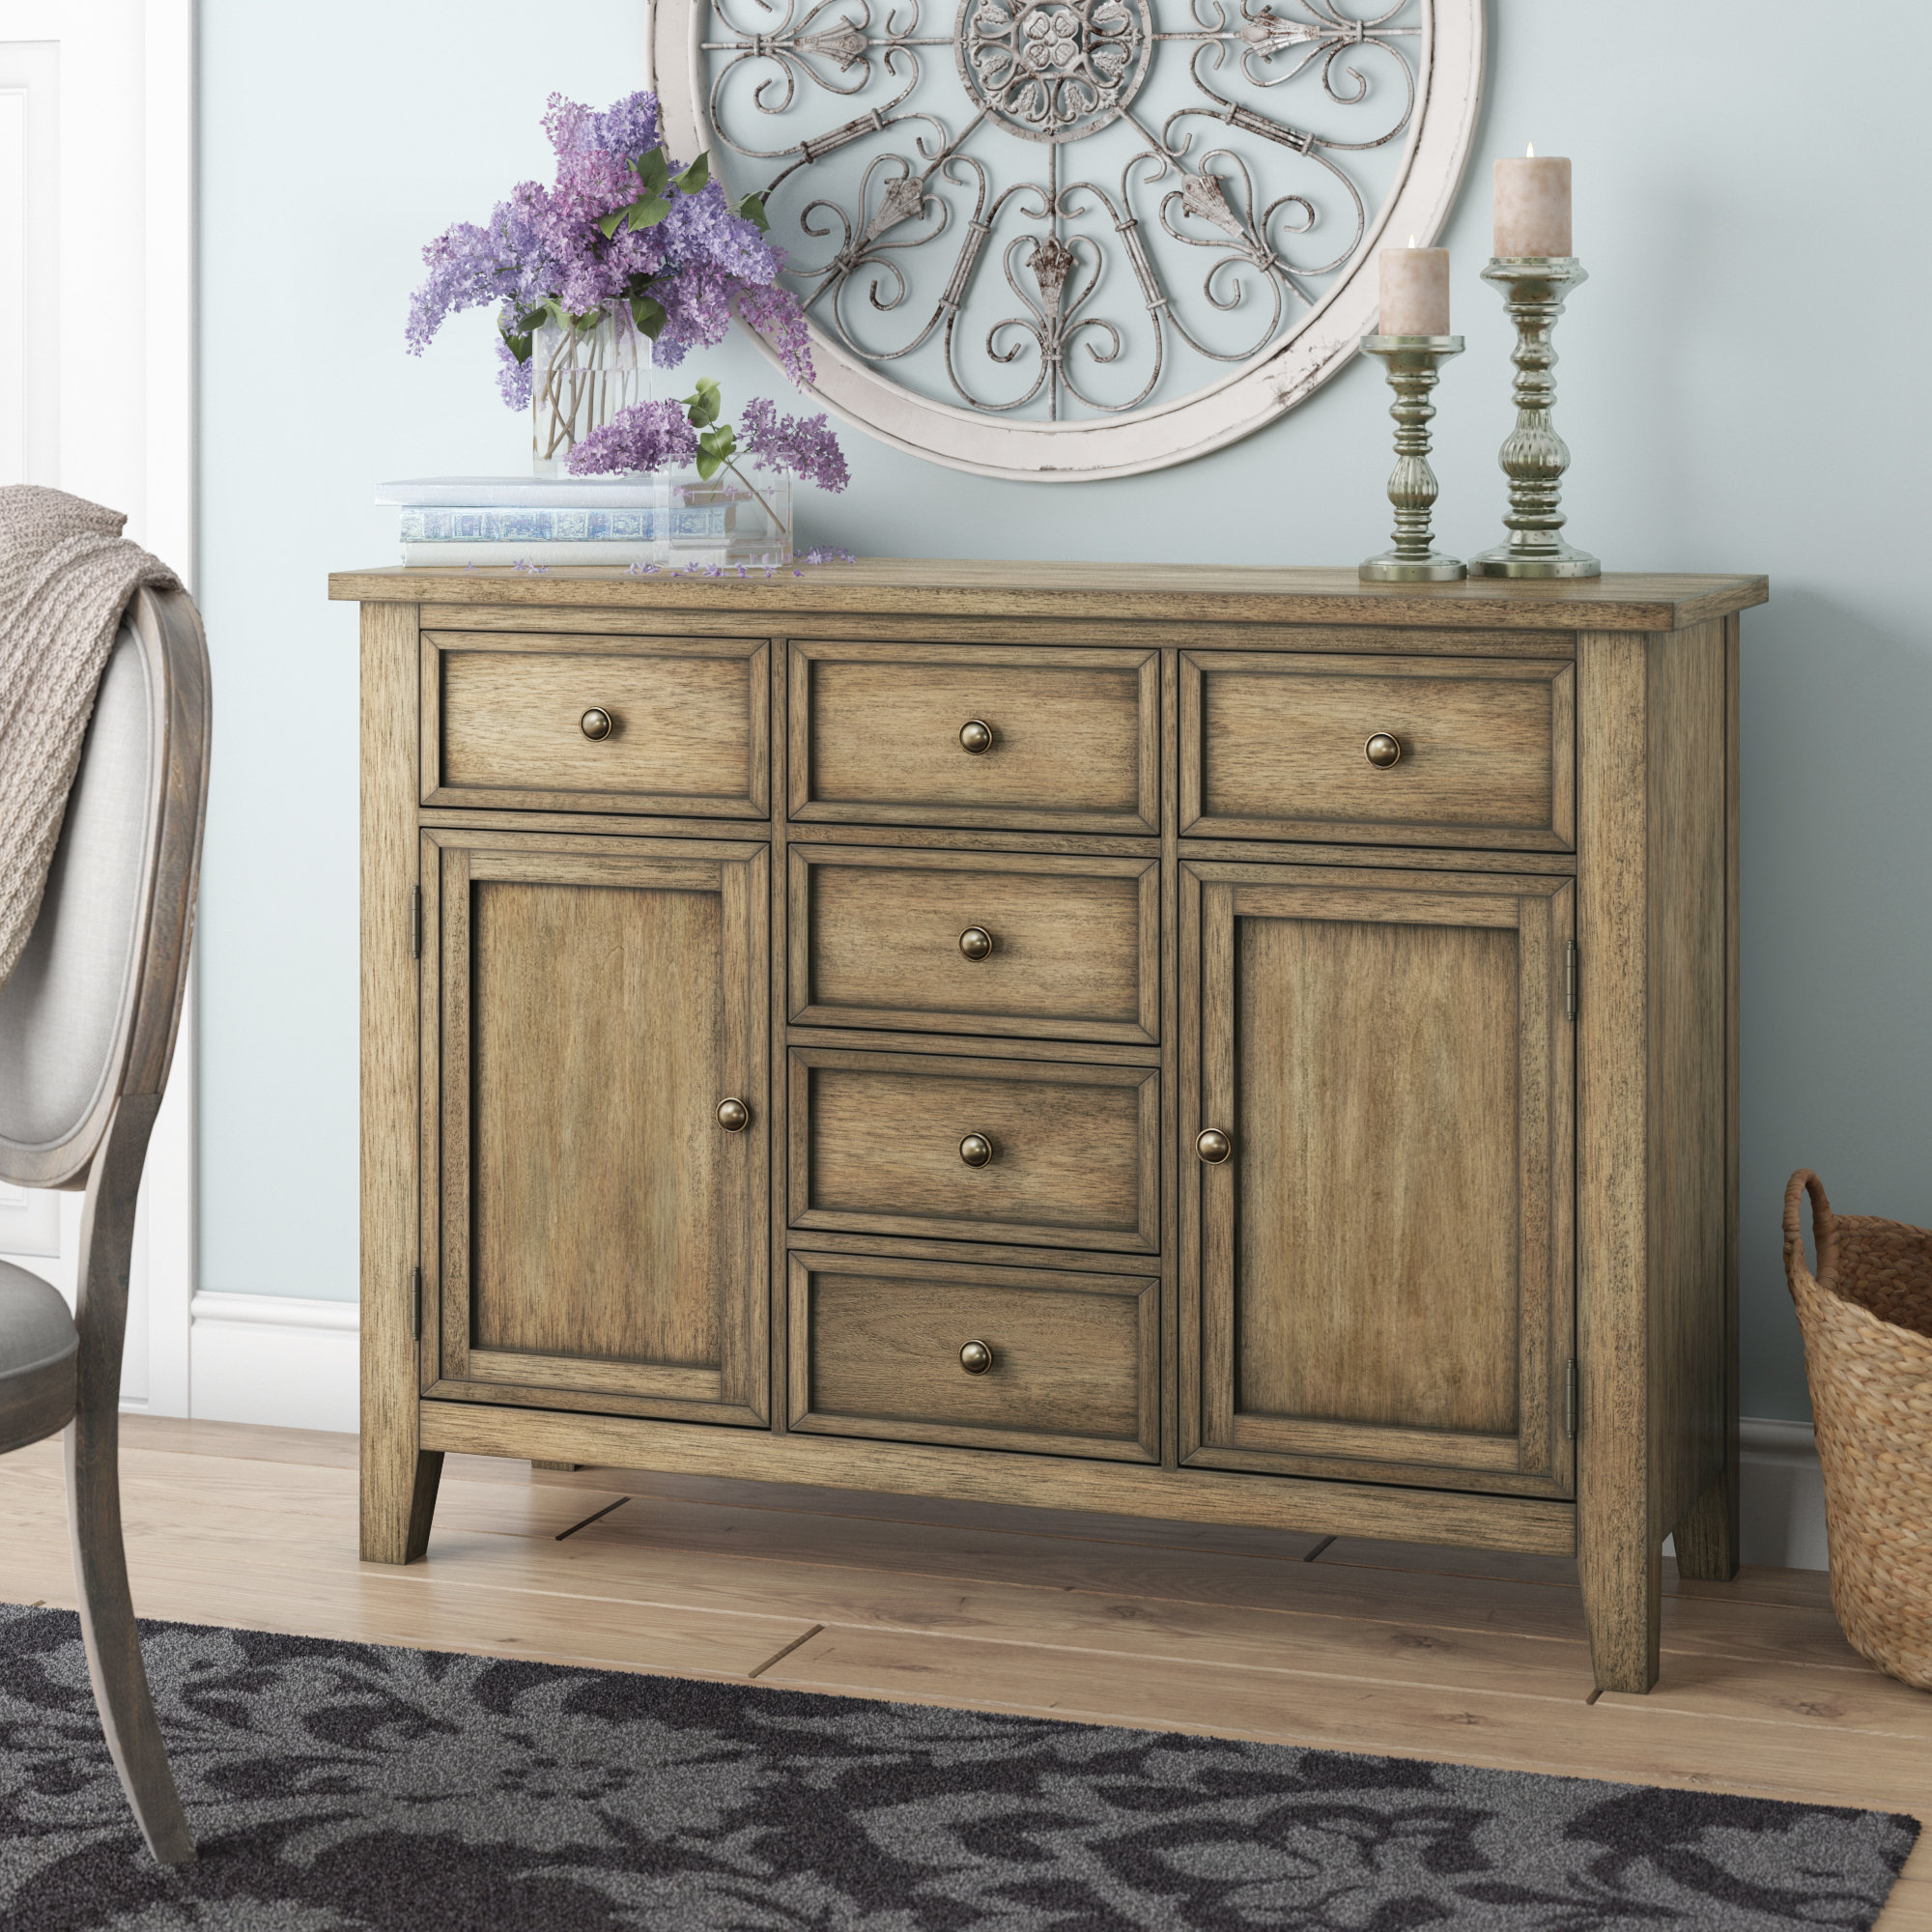 Saint Gratien Sideboard Throughout Favorite Whitten Sideboards (View 11 of 20)